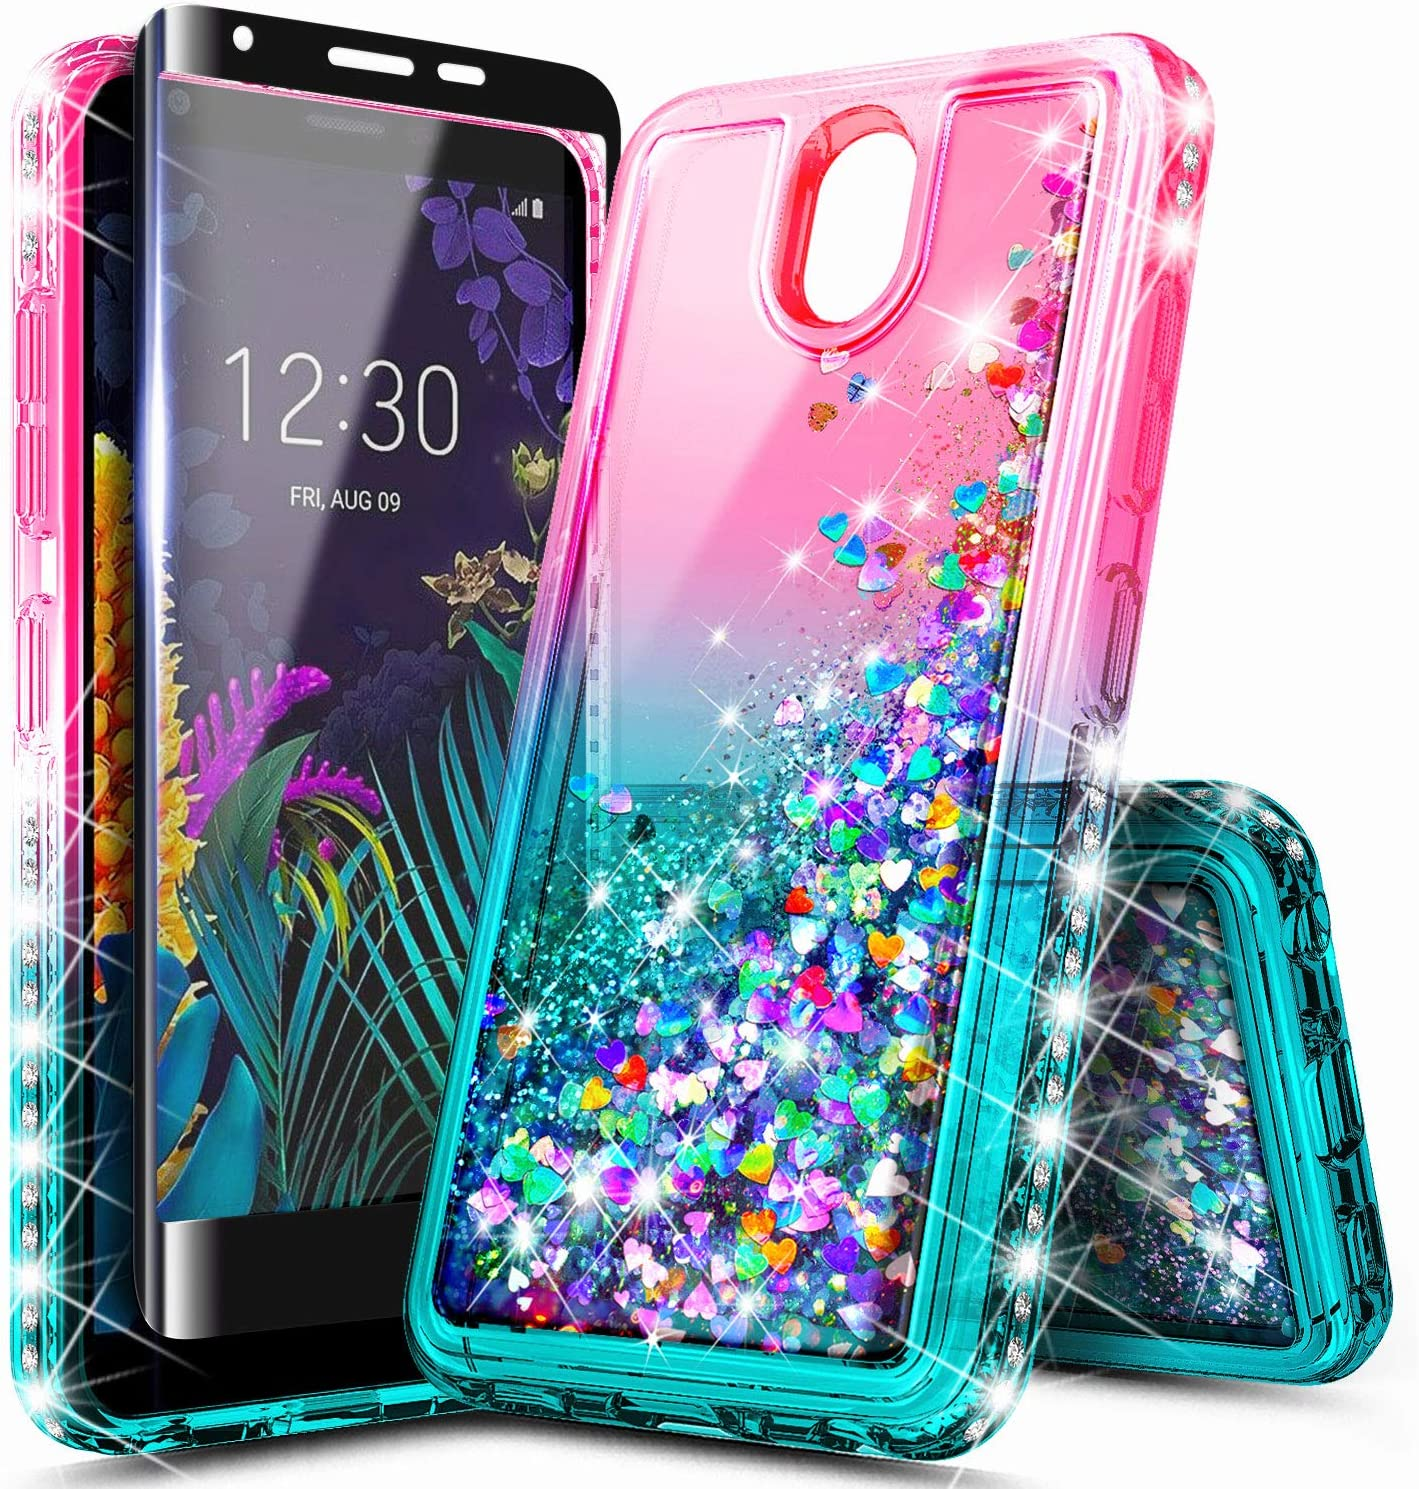 LG Escape Plus Case, Arena 2 /Tribute Royal/Journey LTE /K30 2019 Case with Tempered Glass Screen Protector (Full Coverage), NageBee Glitter Liquid Waterfall Girls Women Kids Cute Case -Pink/Aqua